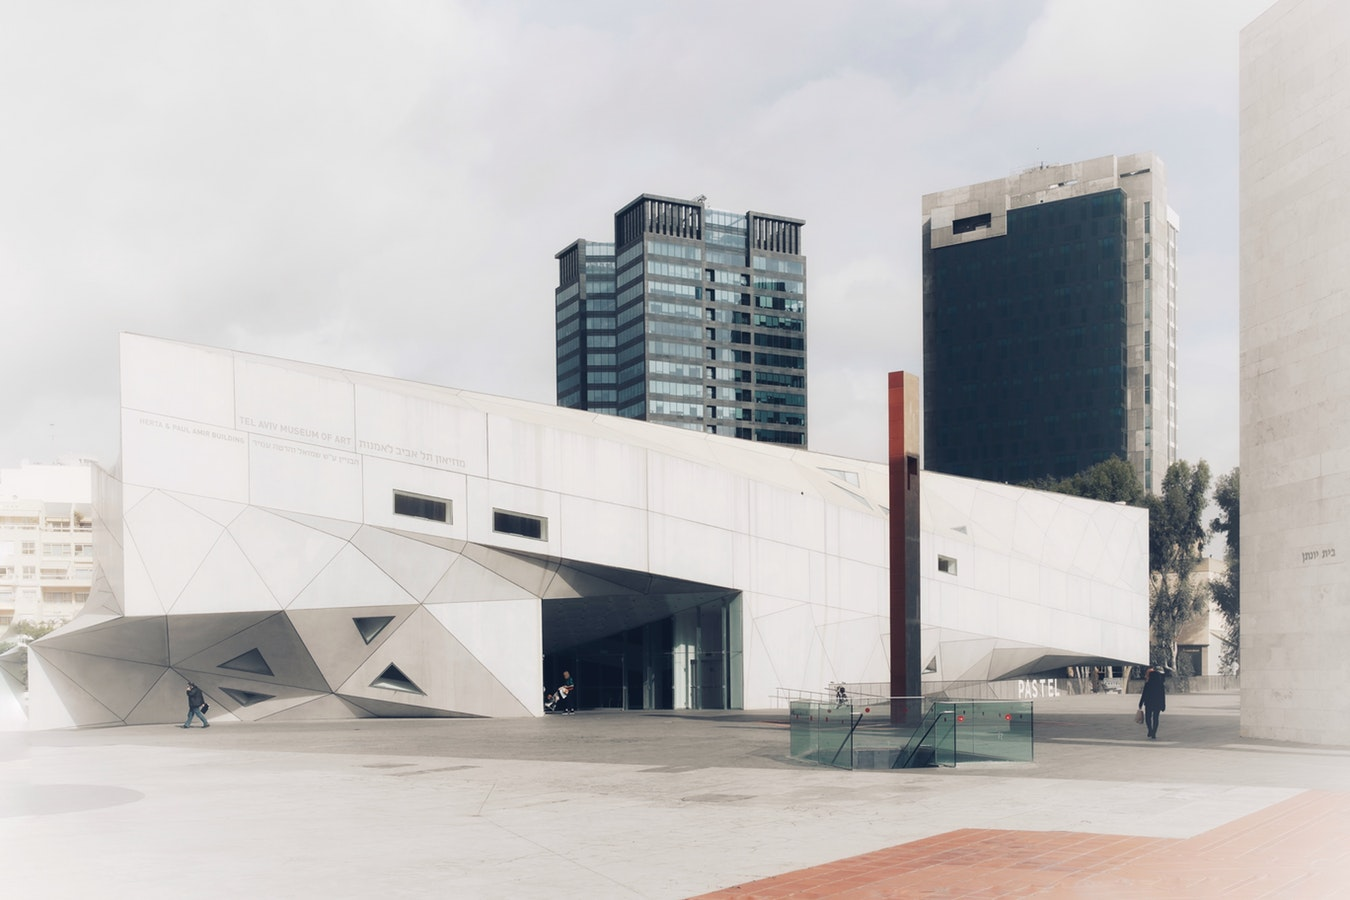 Tel Aviv, Padiglione d'Arte Contemporanea Helena Rubinstein, photo by Alexander Katin on Unsplash